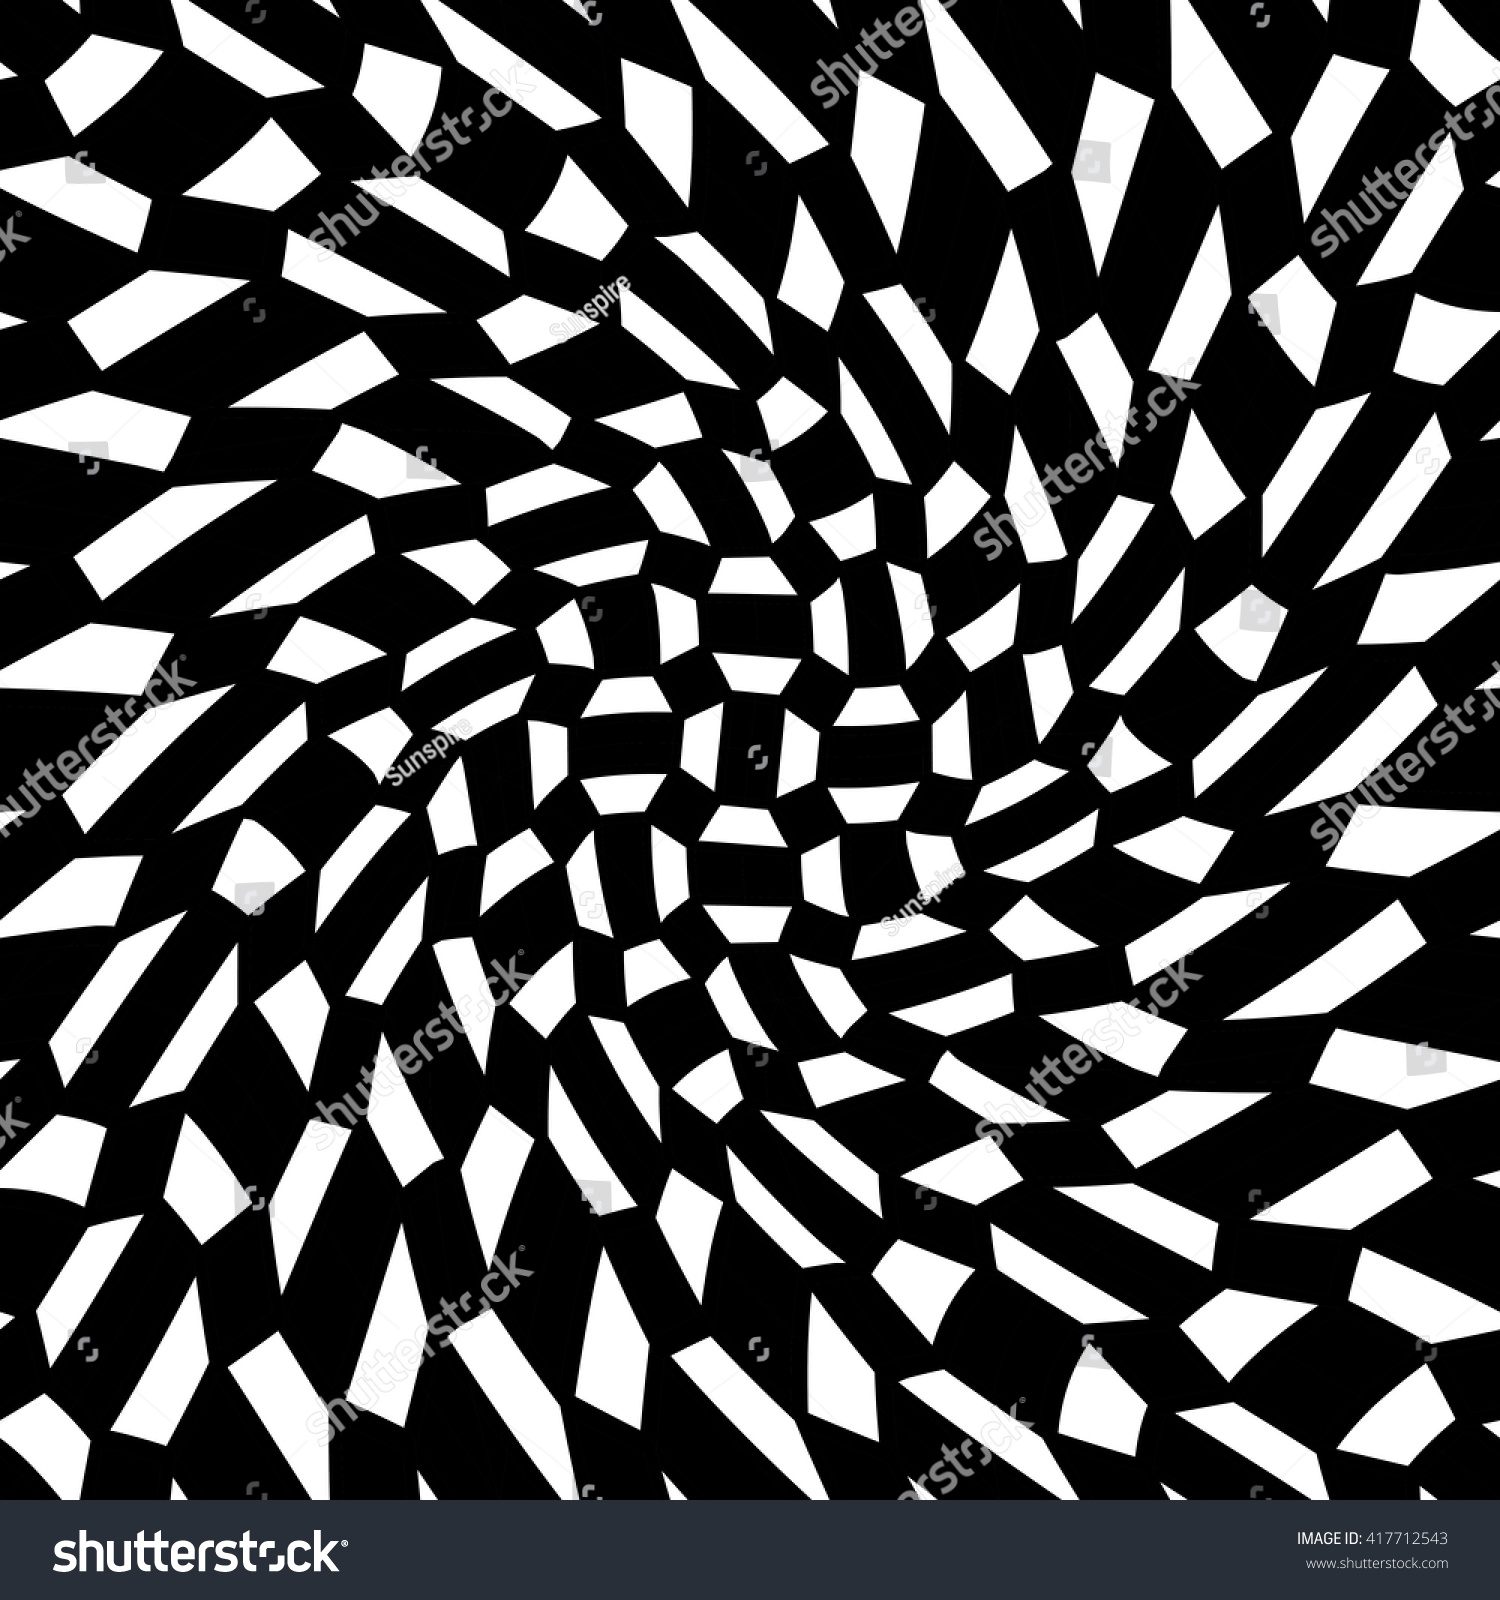 Black bed sheets pattern - Vector Modern Abstract Geometry Psychadelic Pattern Black And White Seamless Geometric Crazy Background Subtle